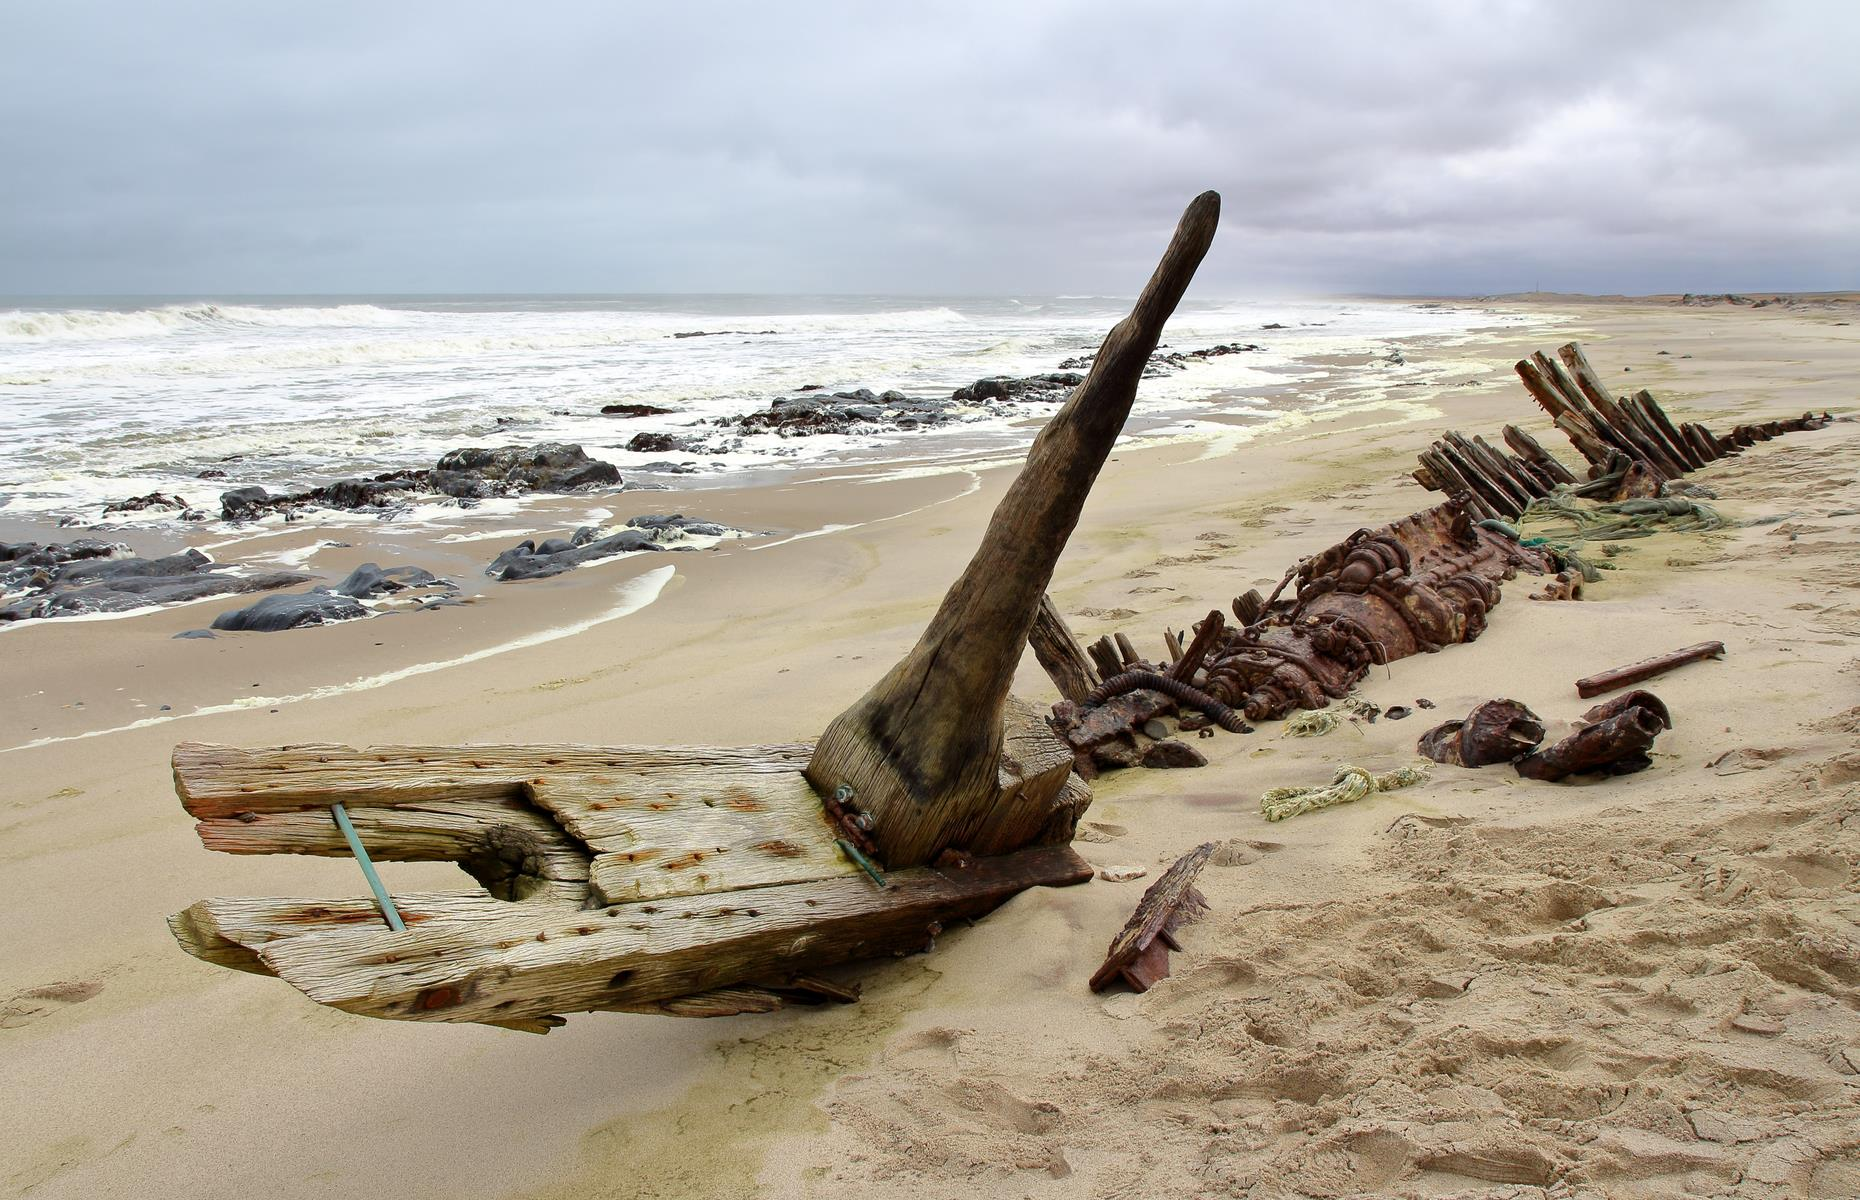 Slide 15 of 51: The old wrecks are reminders of how many shipwrecked sailors have lost their lives to the coast. Once stranded, the only way out was by walking hundreds of miles through a hot and arid desert – and it was impossible to survive.